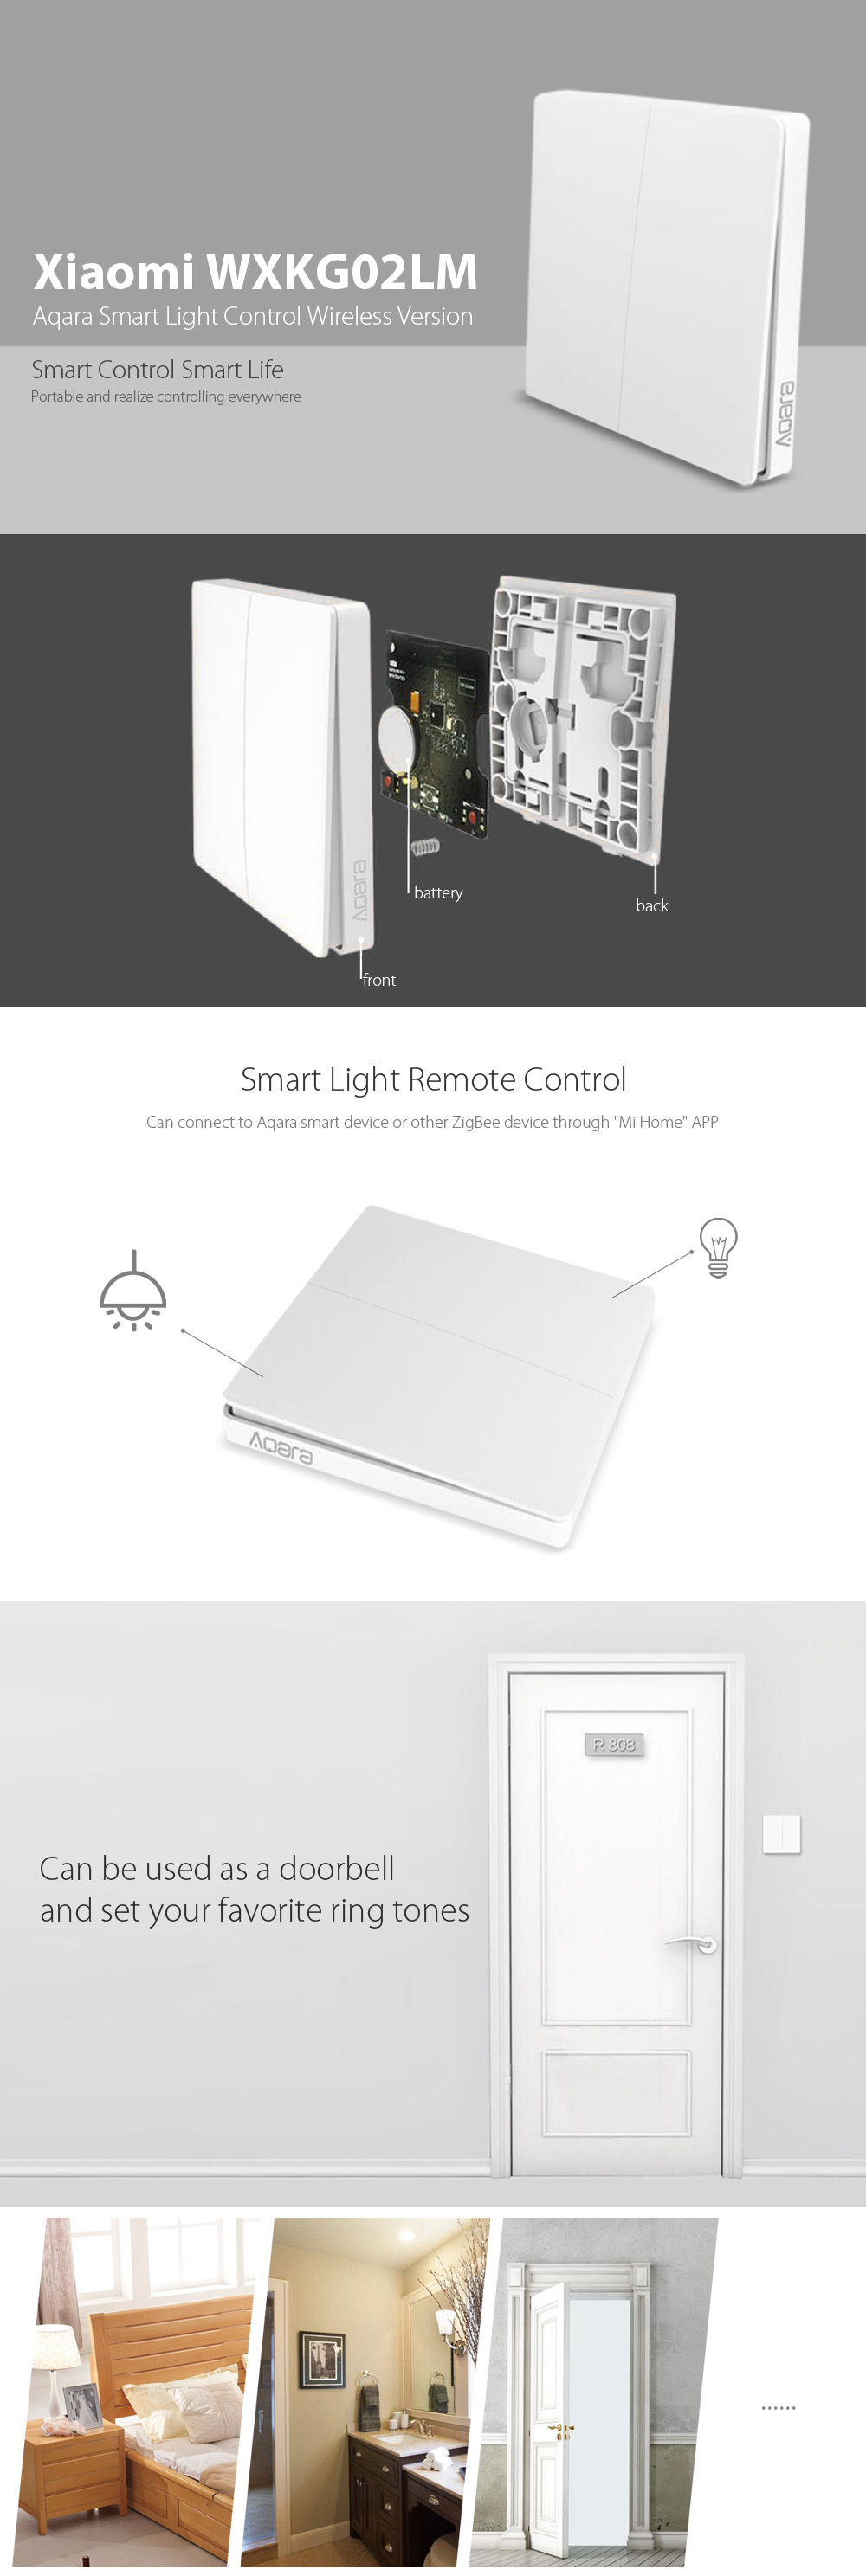 Xiaomi Aqara Smart Light Control font b ZiGBee b font Wireless Key Xiaomi Aqara wall switch Wireless - Bezdrátový spínač